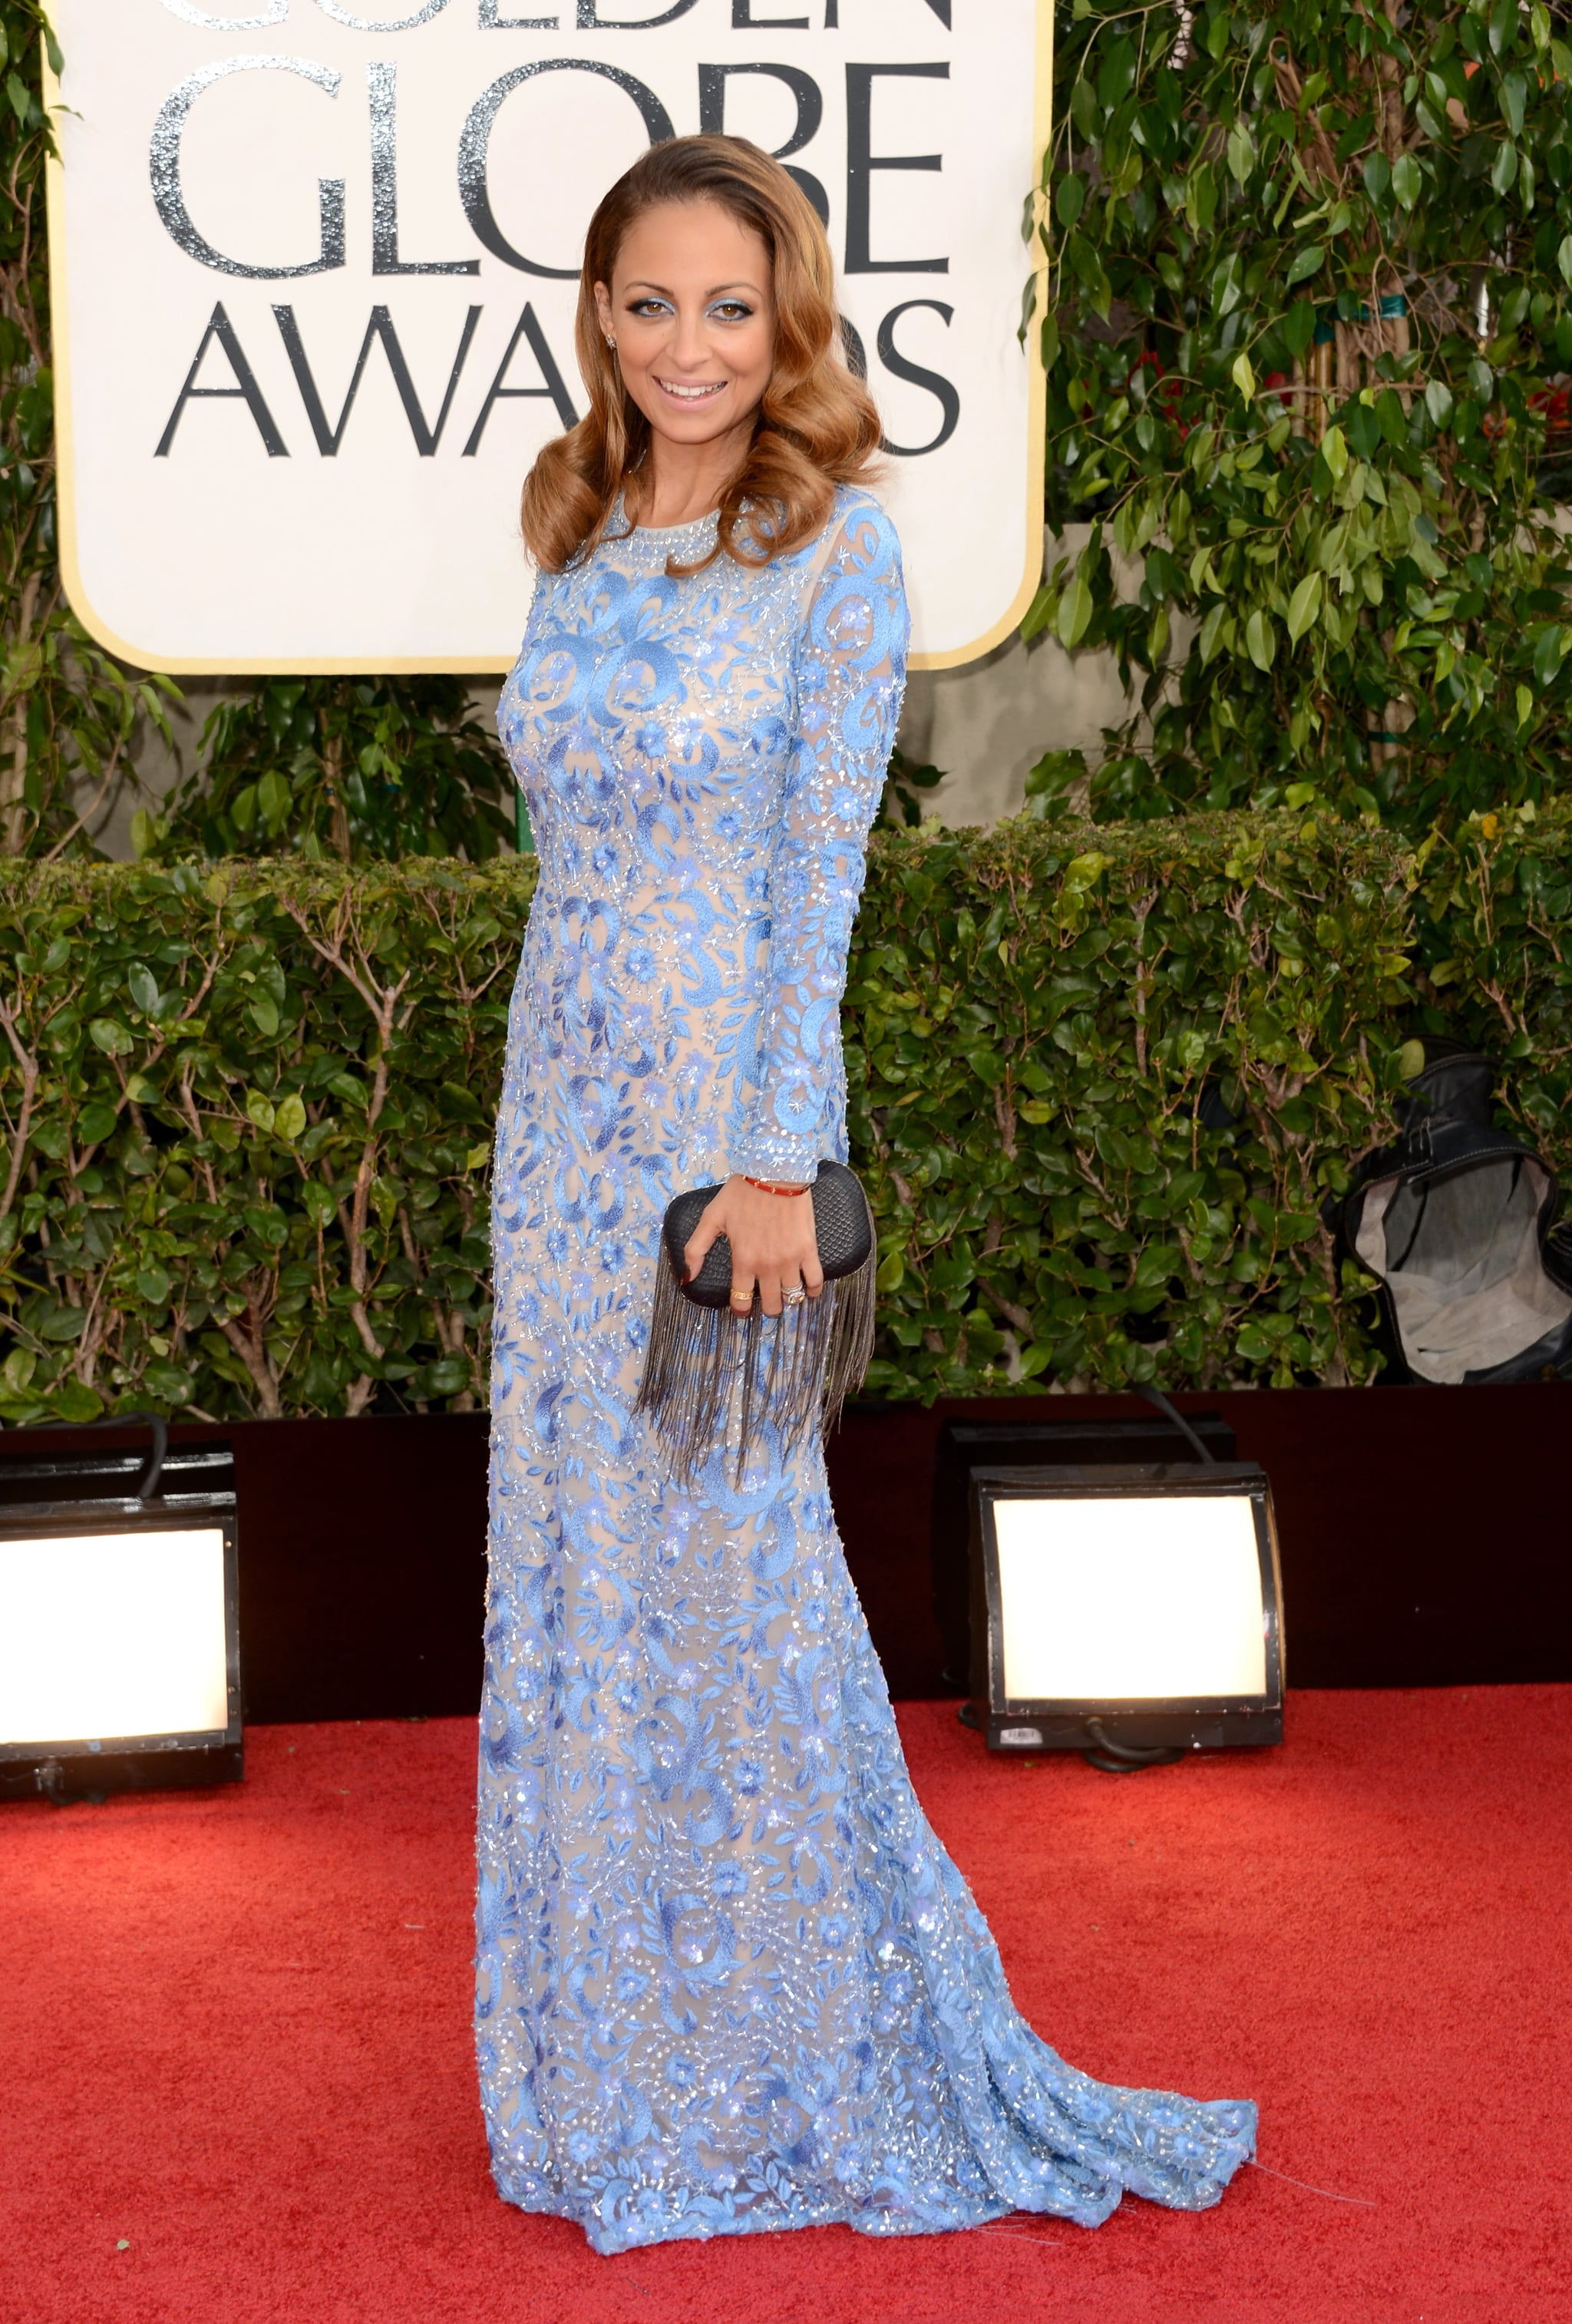 Nicole Richie Goes Blue at the 2013 Golden Globes